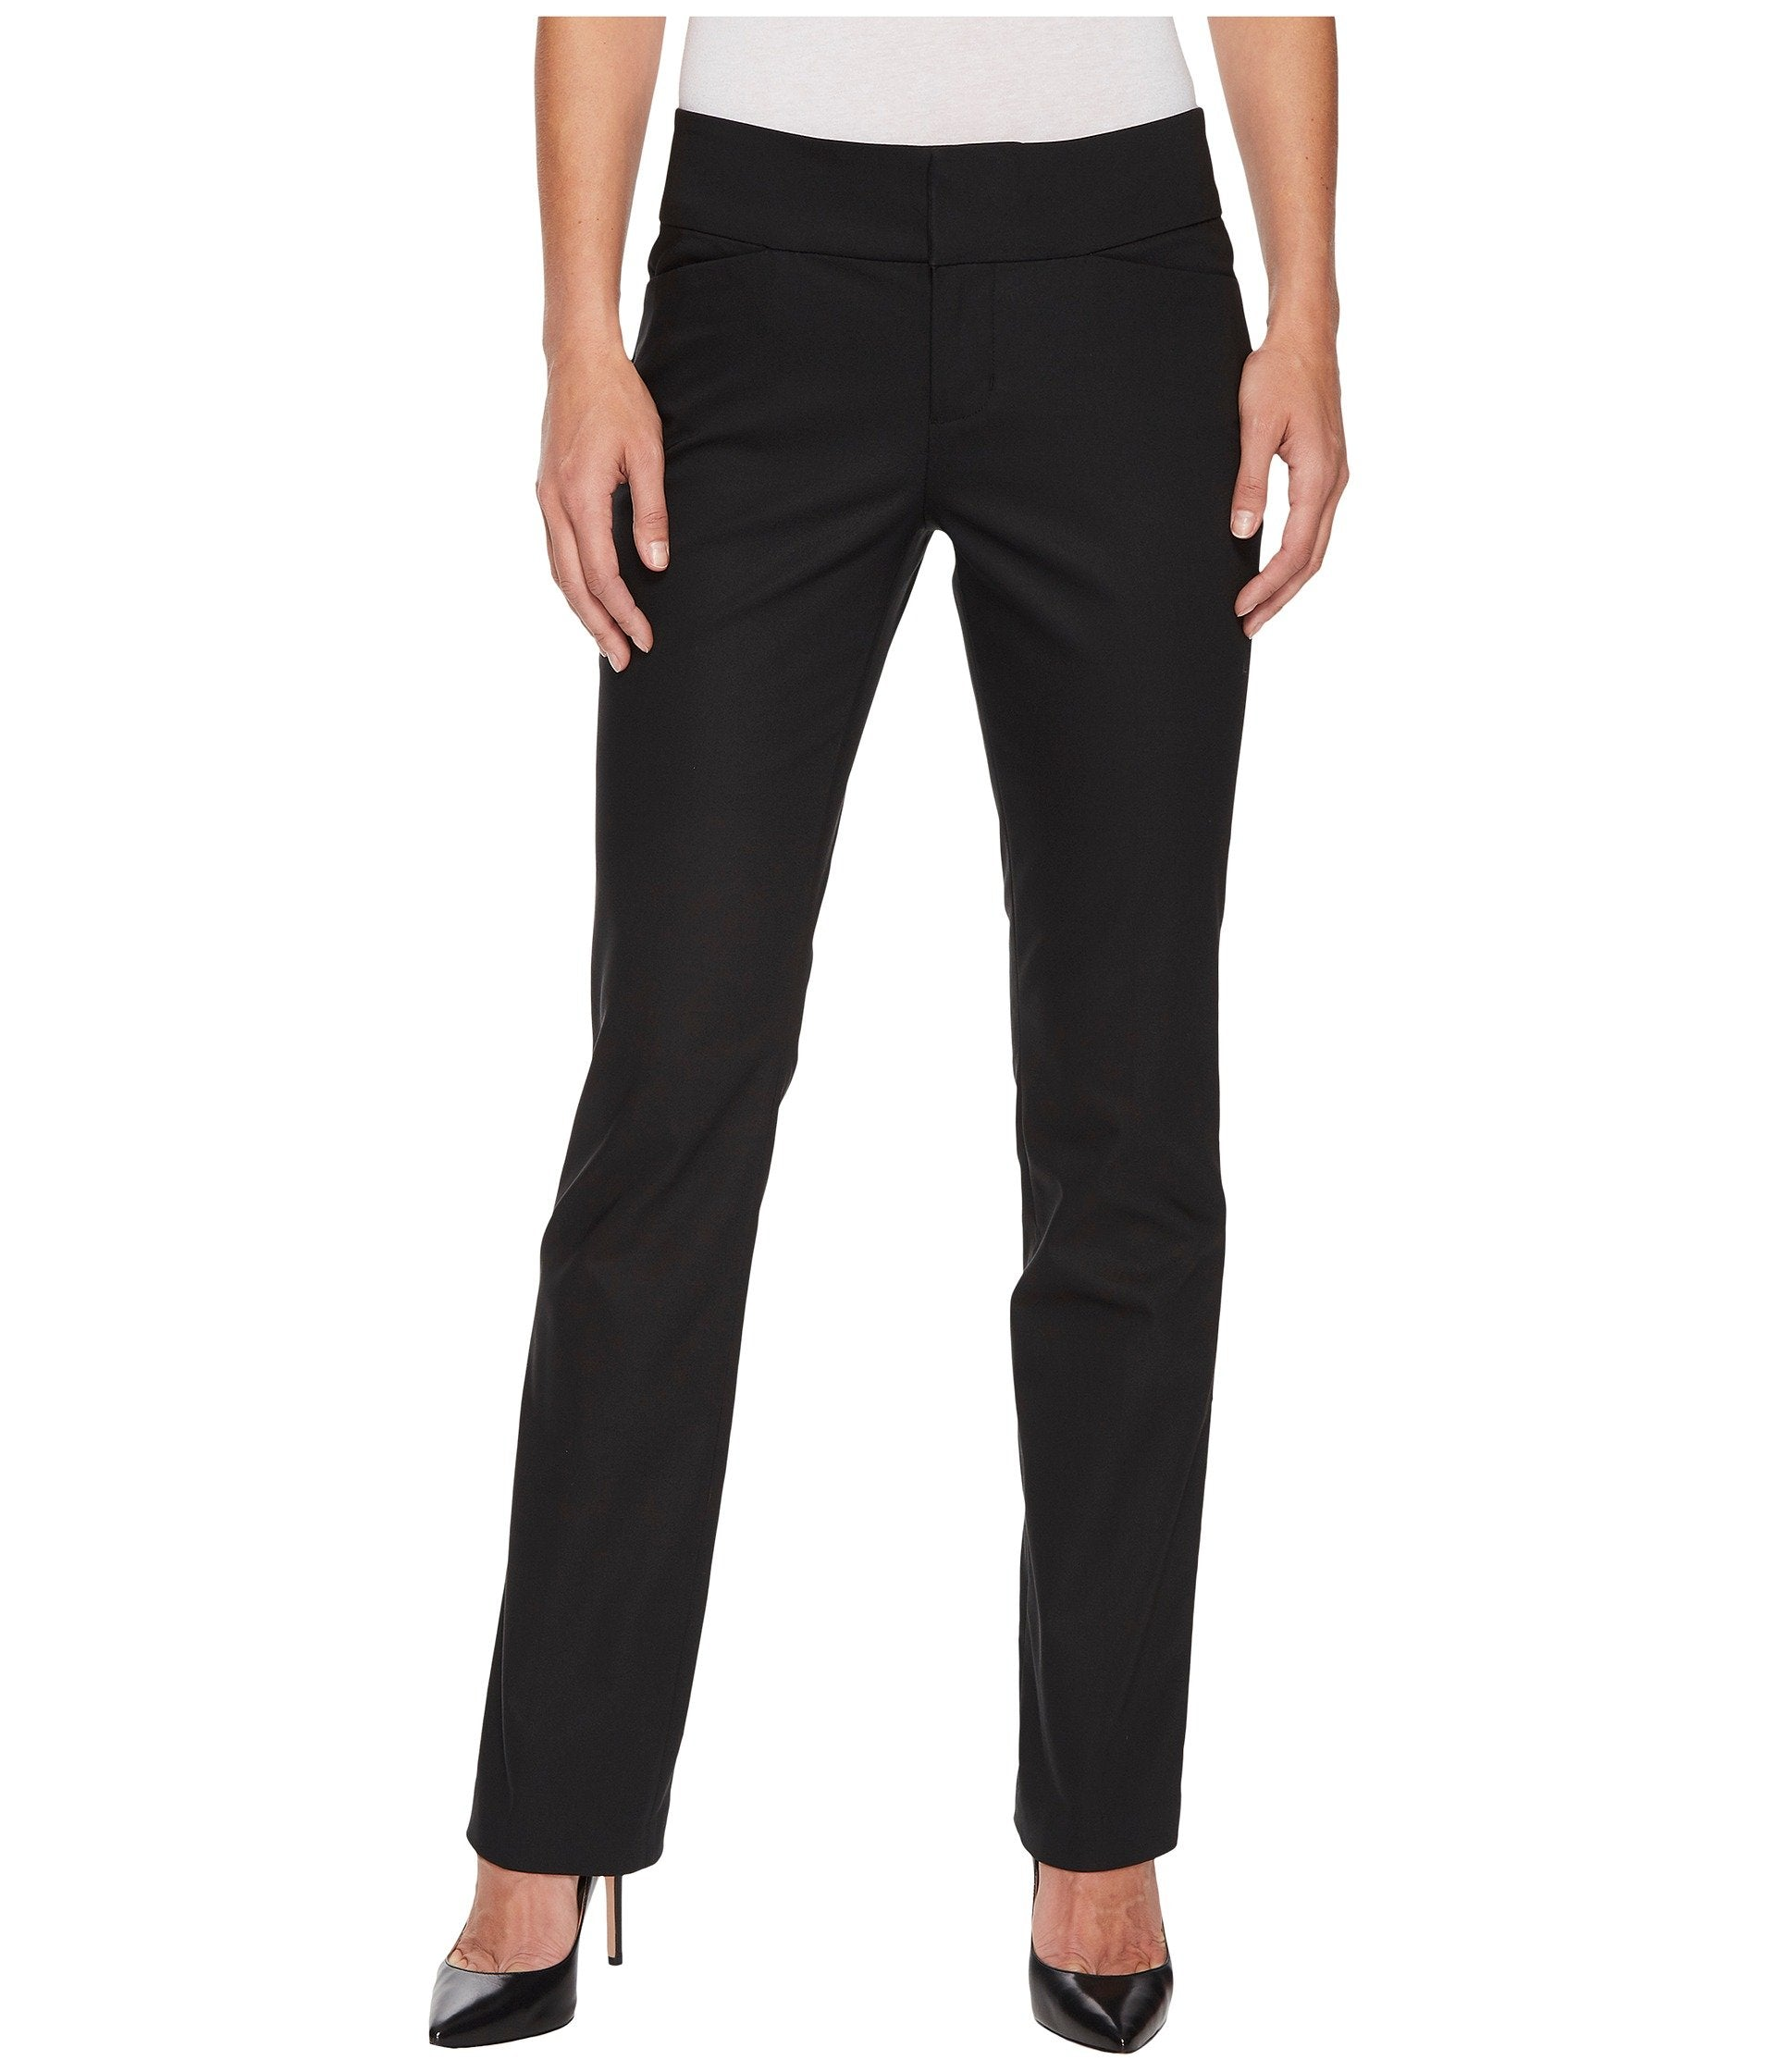 Graham Bootcut Trousers in Black